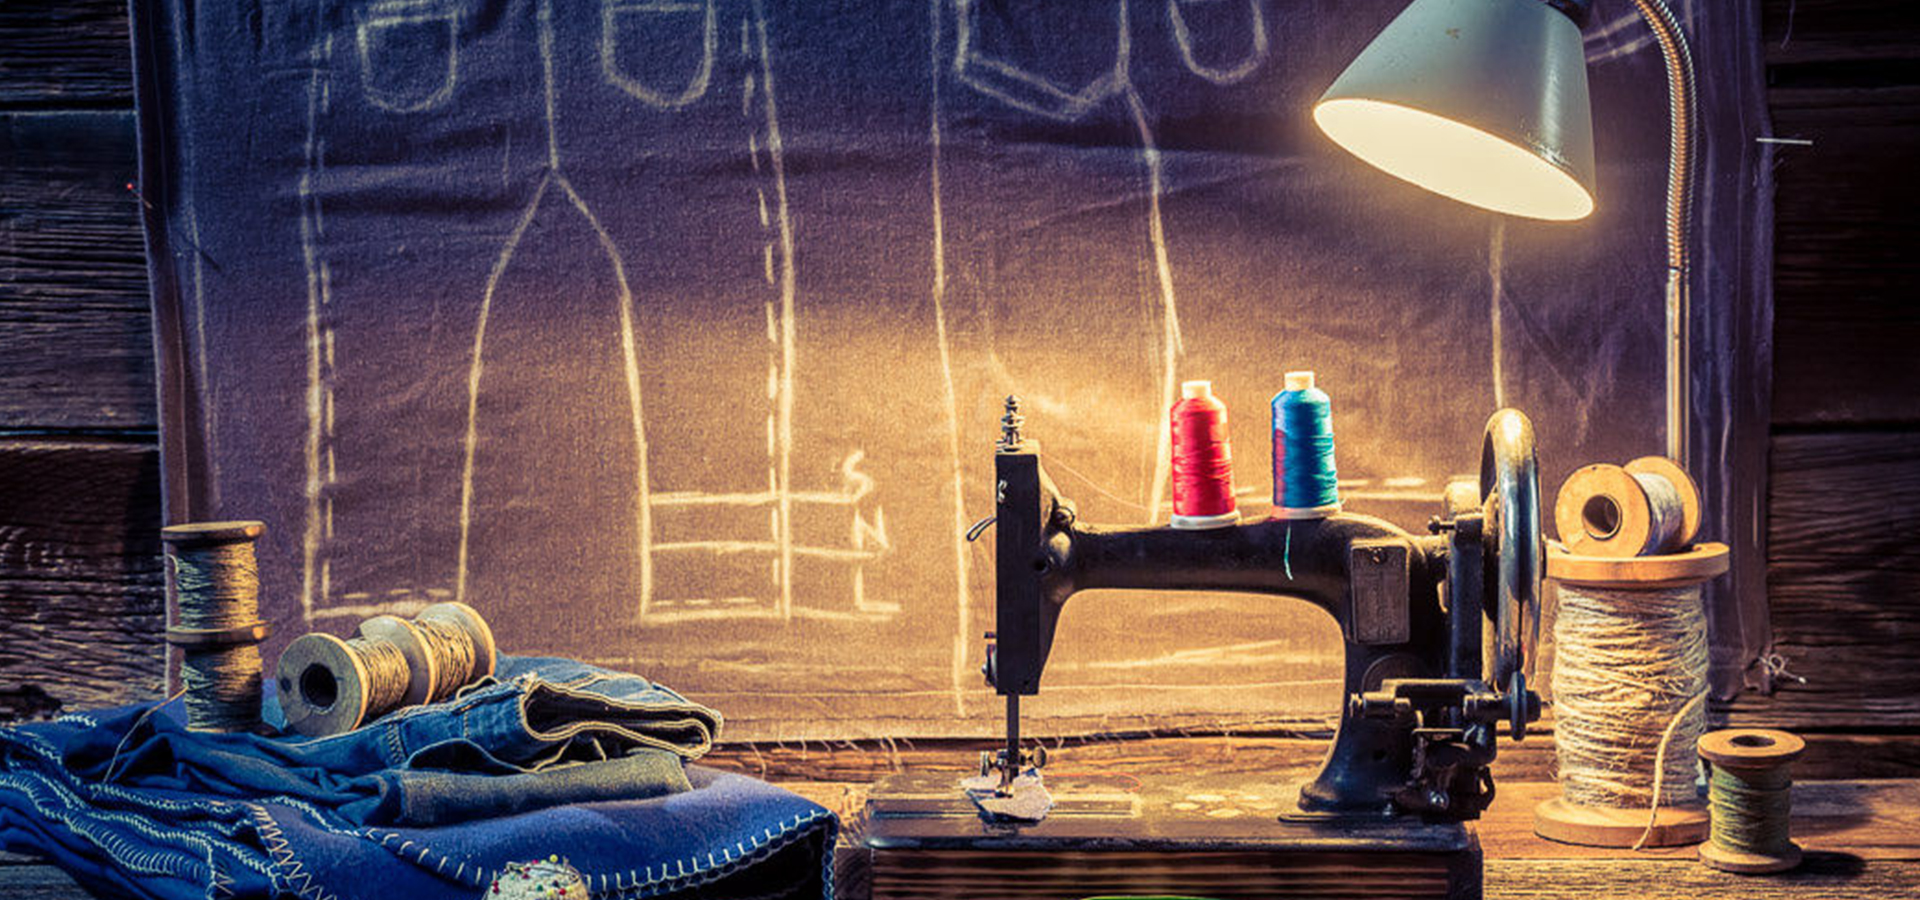 Sewing Background Sewing Machine Woolen Background